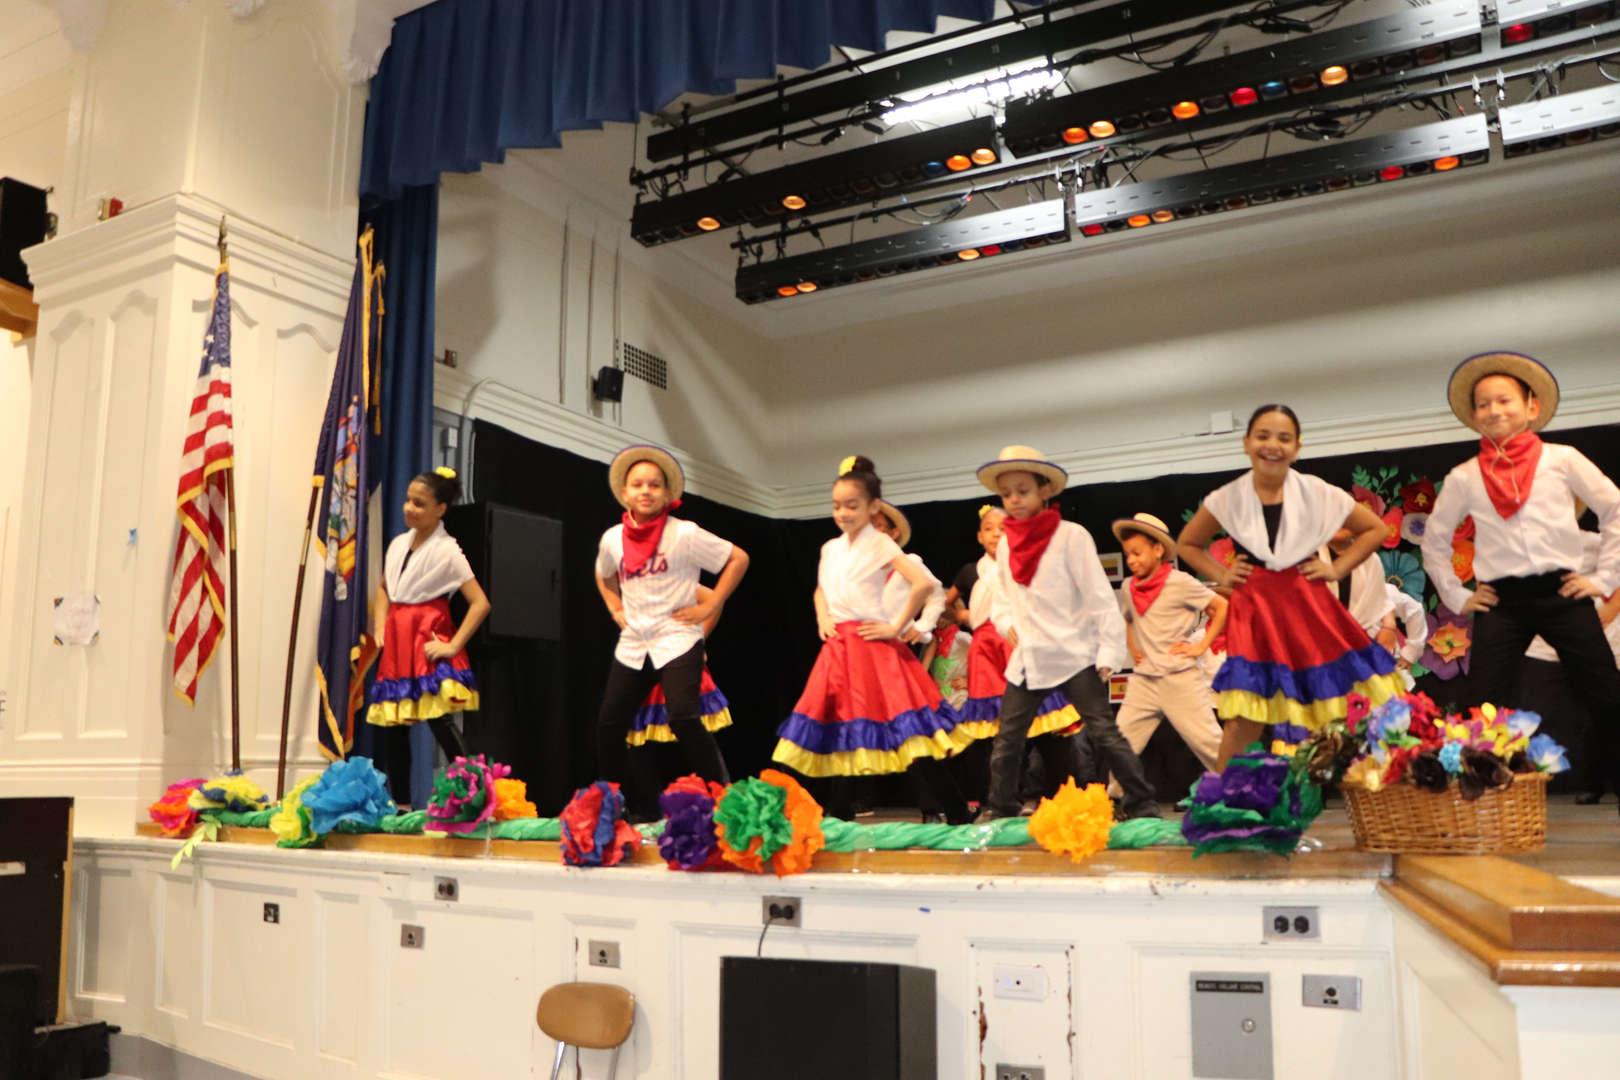 Students on stage dancing in colorful costumes